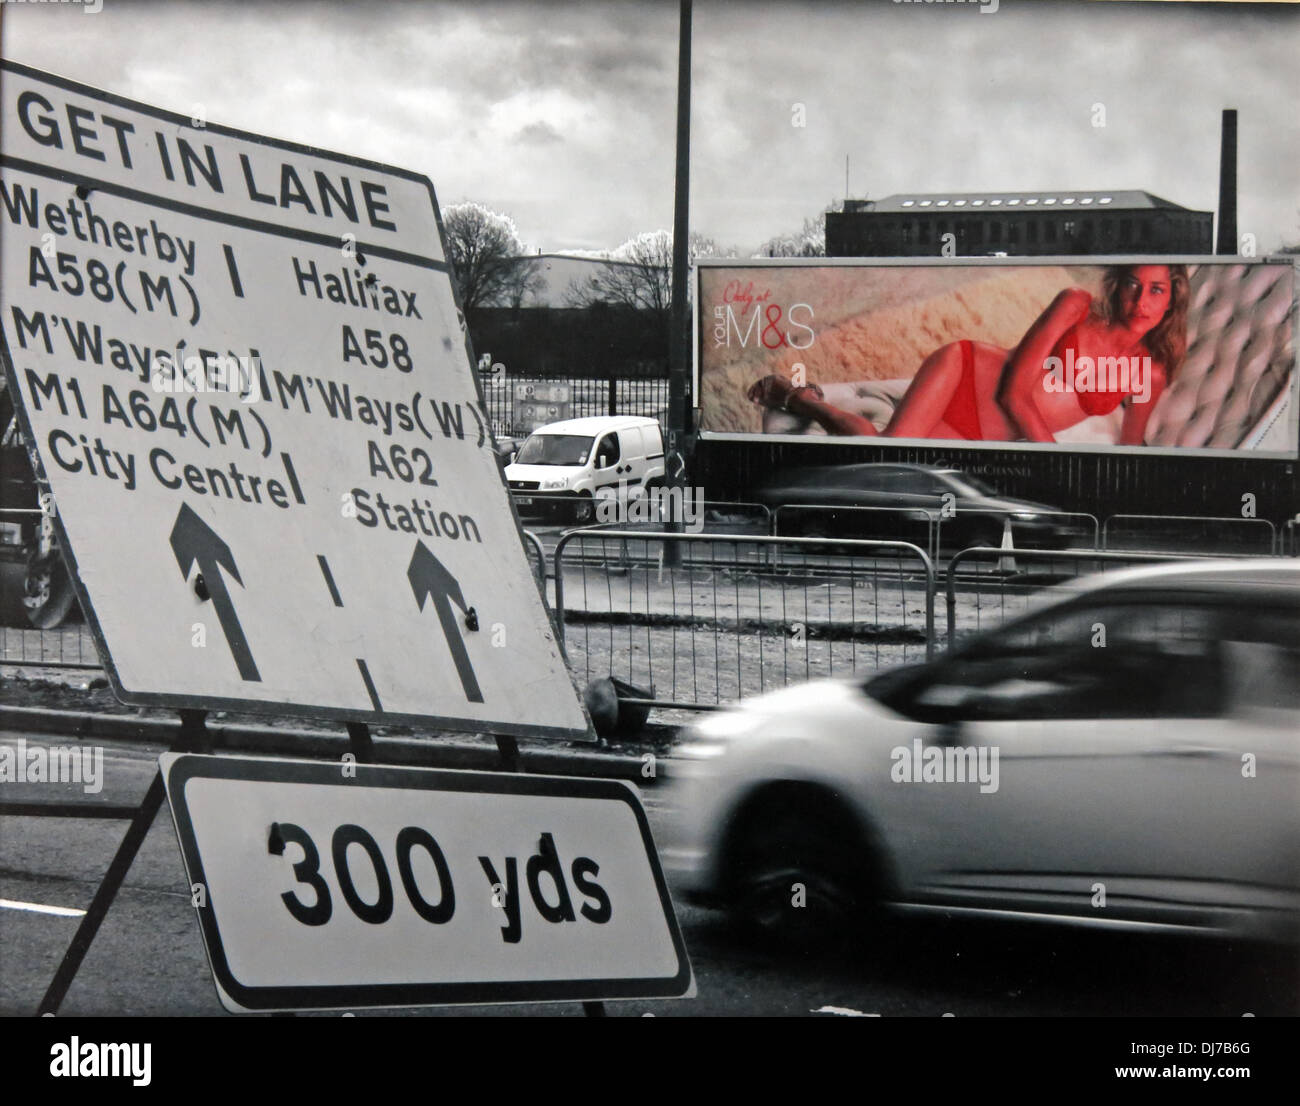 in,underwear,M&S,Marks,&,Spencers,and,driving,distractions,on,the,road,roads,bypass,ring,ringroad,fun,roadworks,works,improvements,highway,sign,Naked,girl,on,a,poster,distracting,morning,drivers,in,Leeds,Yorkshire,England,UK,signage,signs,Halifax,A62,weatherby,A64,city,centre,delay,delays,Gotonysmith,highways,agency,evening,commuter,english,Selectively,coloured,image,of,a,scantily,clad,lady,on,a,poster,distracting,commuters,colored,selective,delay,delays,delayed.late,later,Buy Pictures of,Buy Images Of